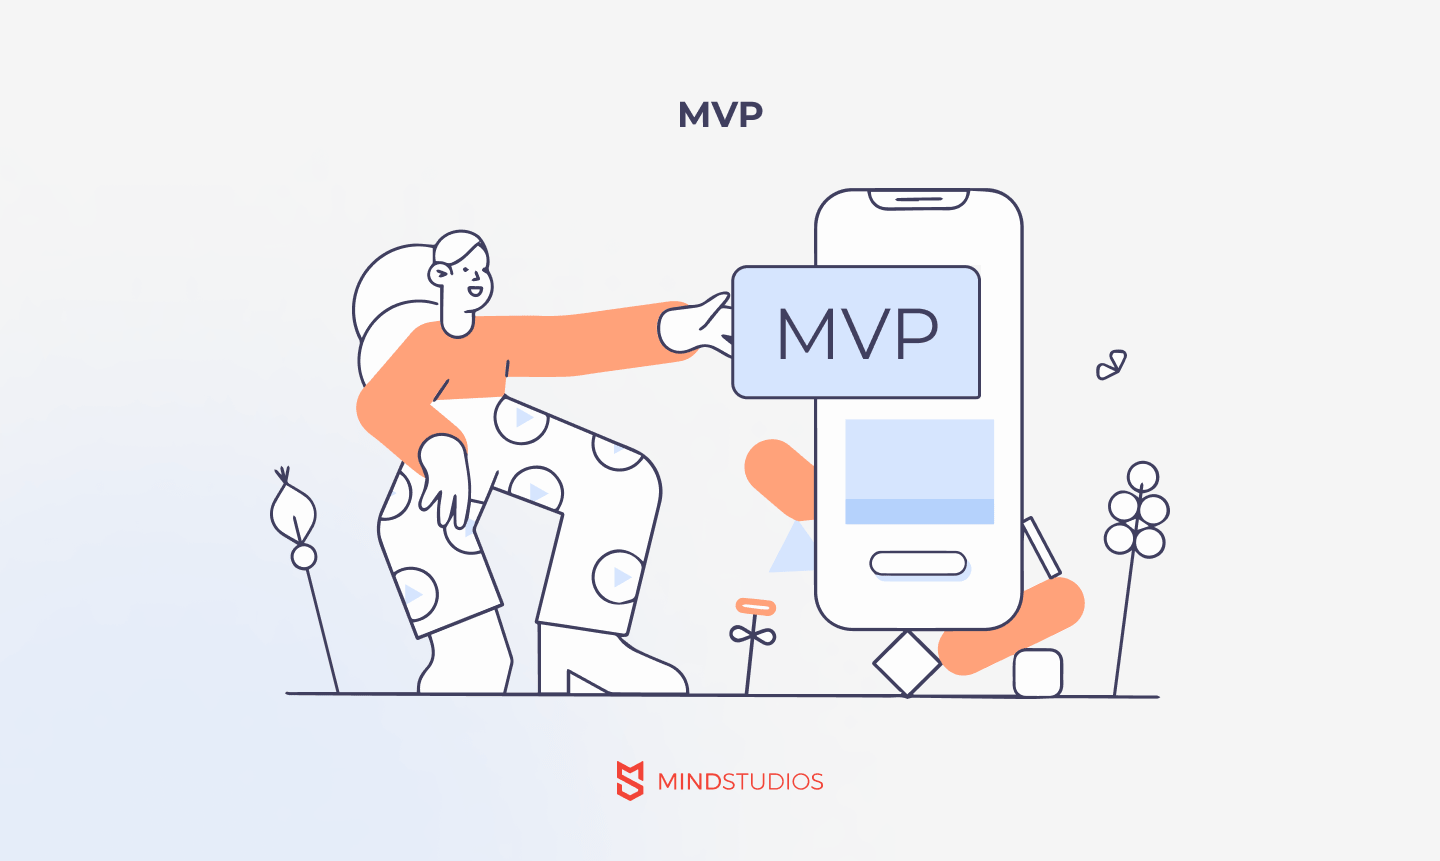 Have an MVP